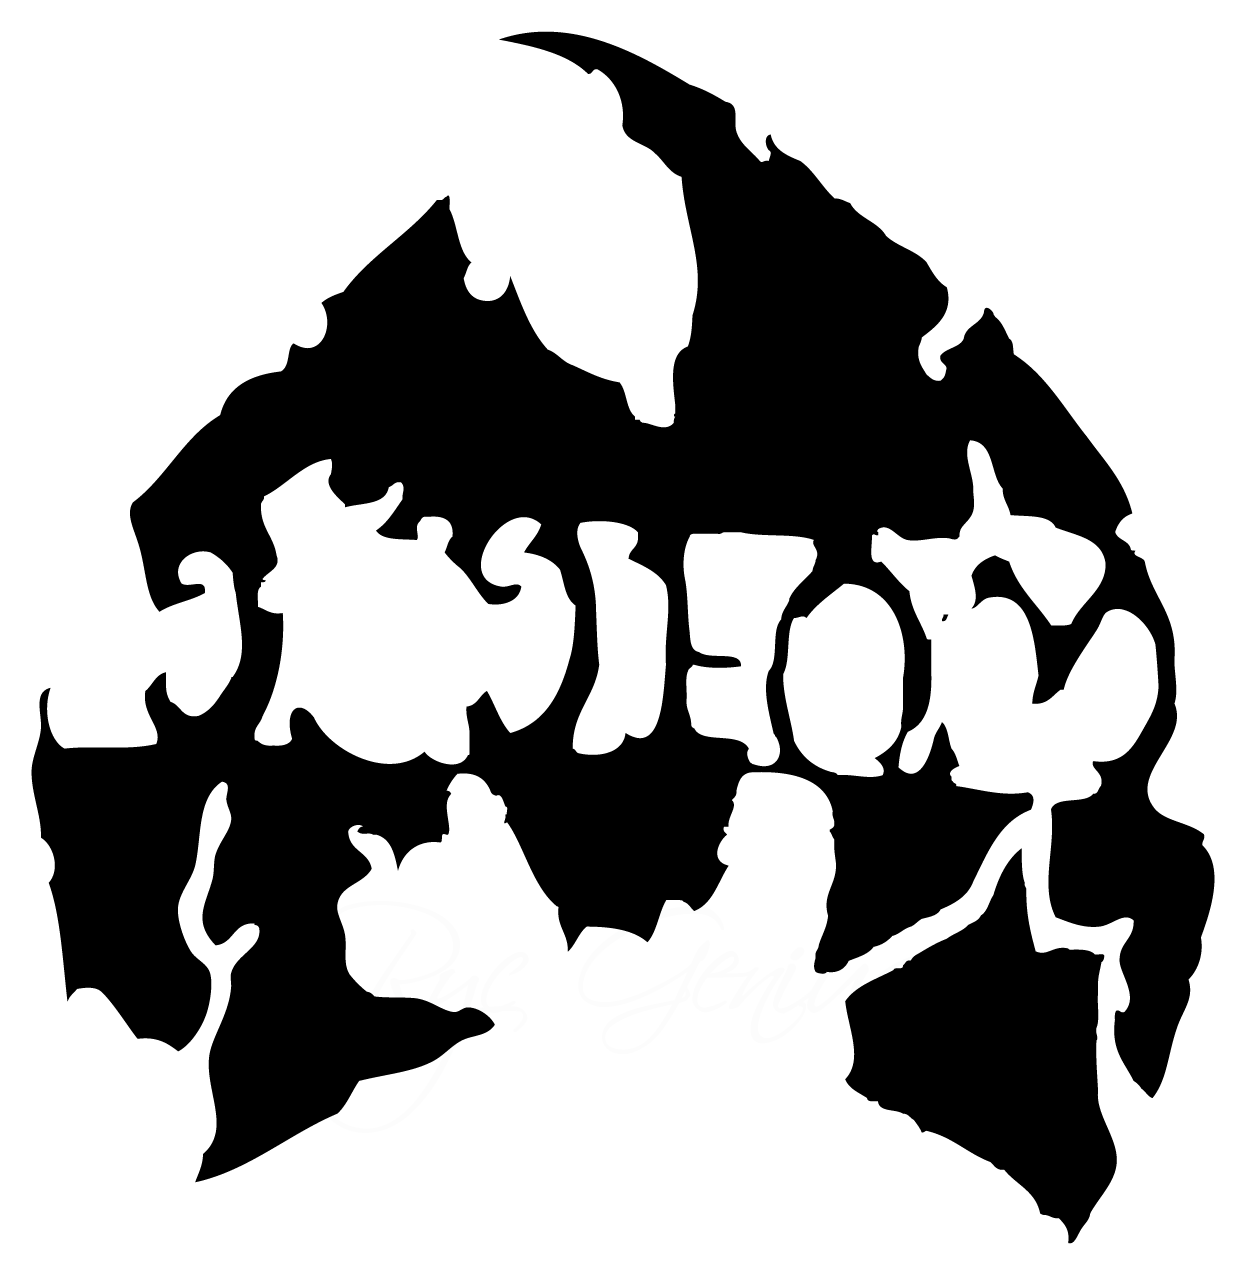 Anybody know it the says in the Method Man logo?.